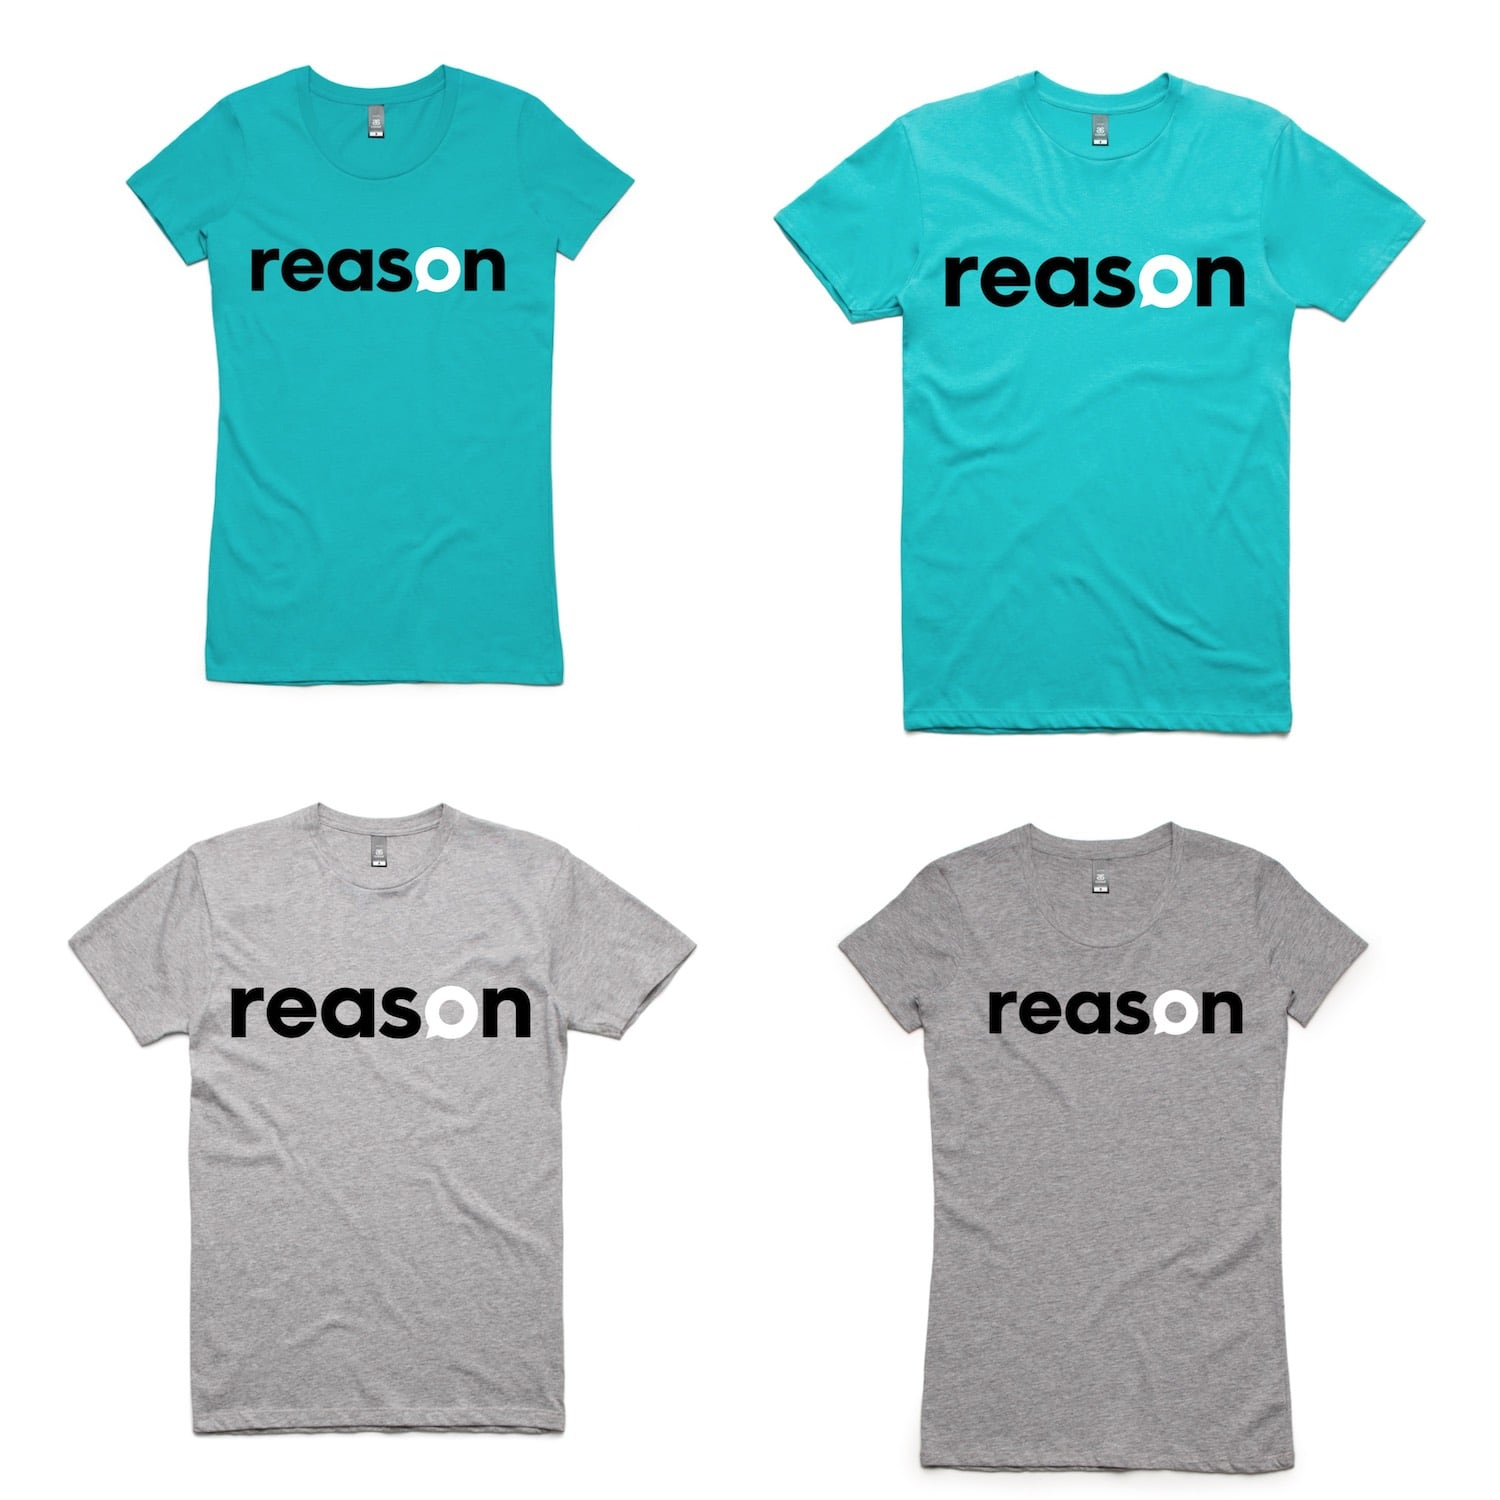 Reason T-Shirts Teal & Grey